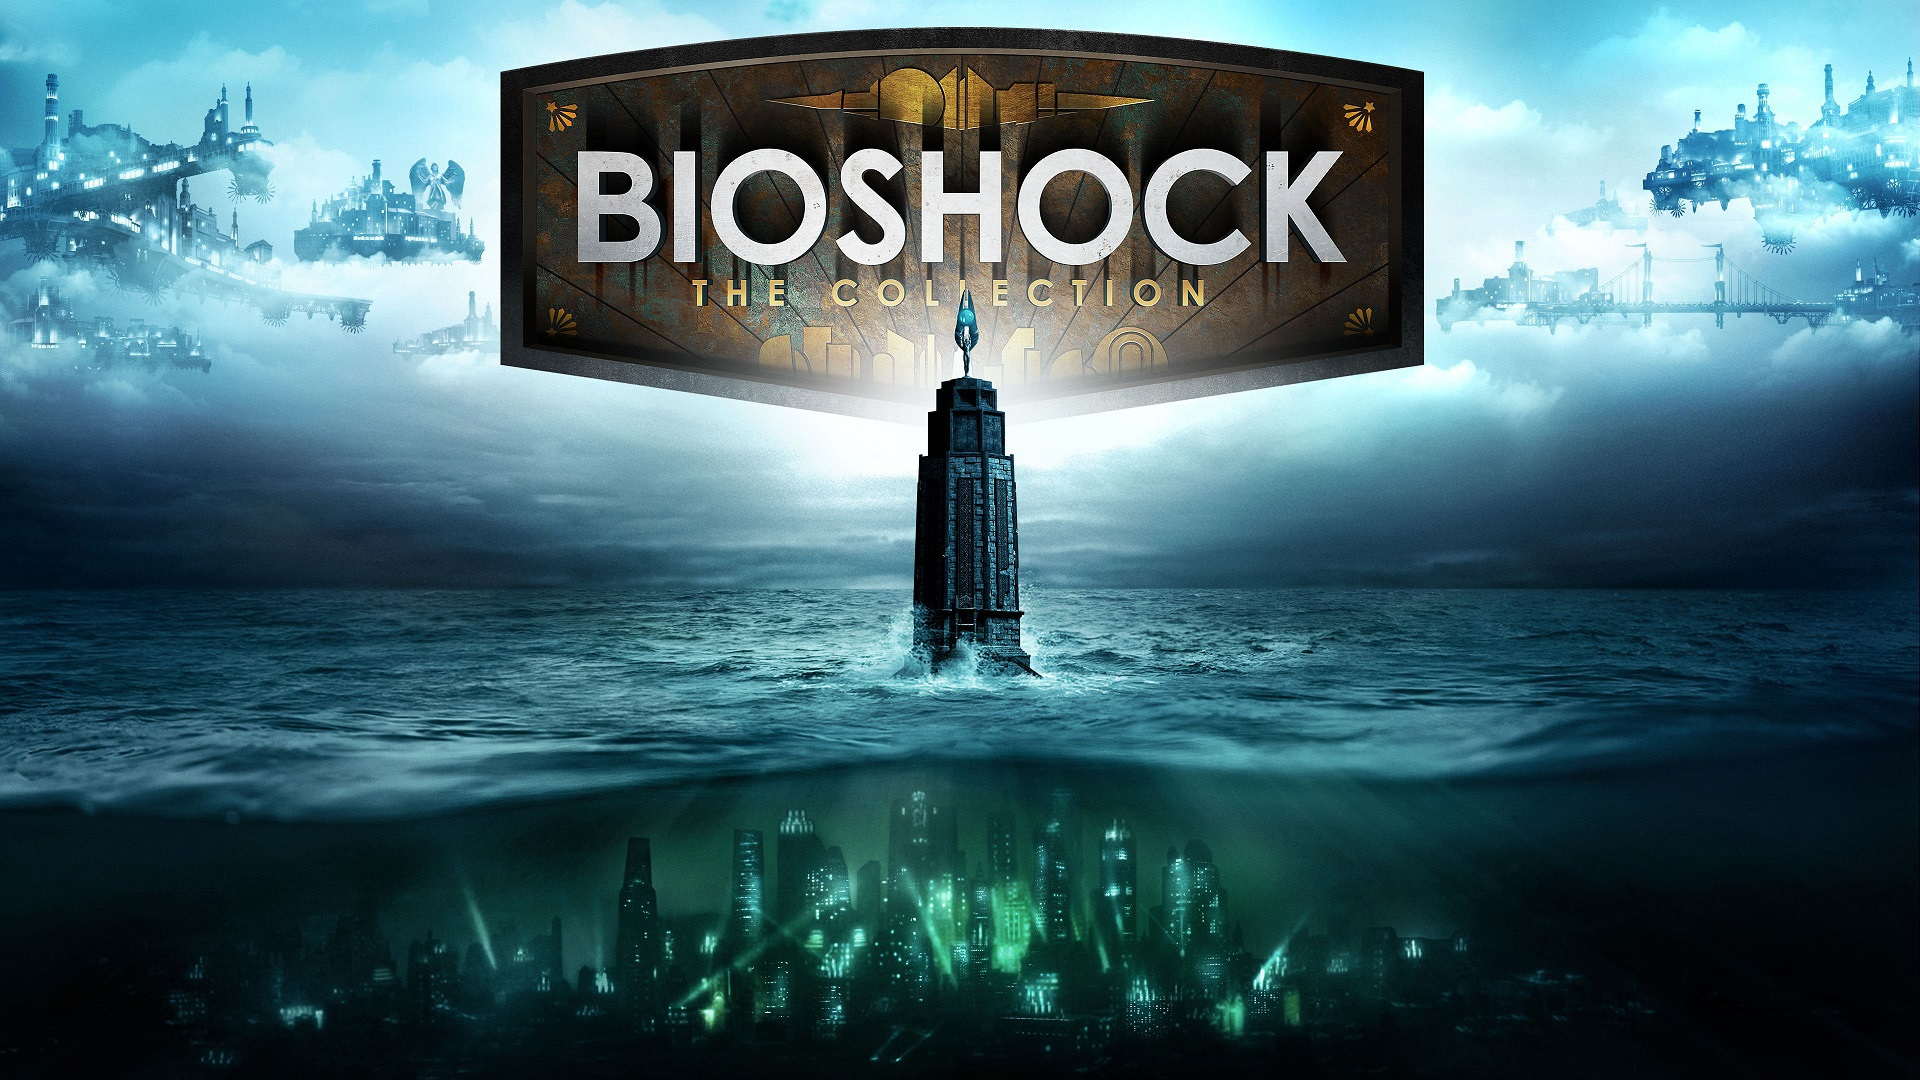 BioShock: The Collection Remastered Games Run at 1080p/60fps - Free PC Upgrade Offer Explained